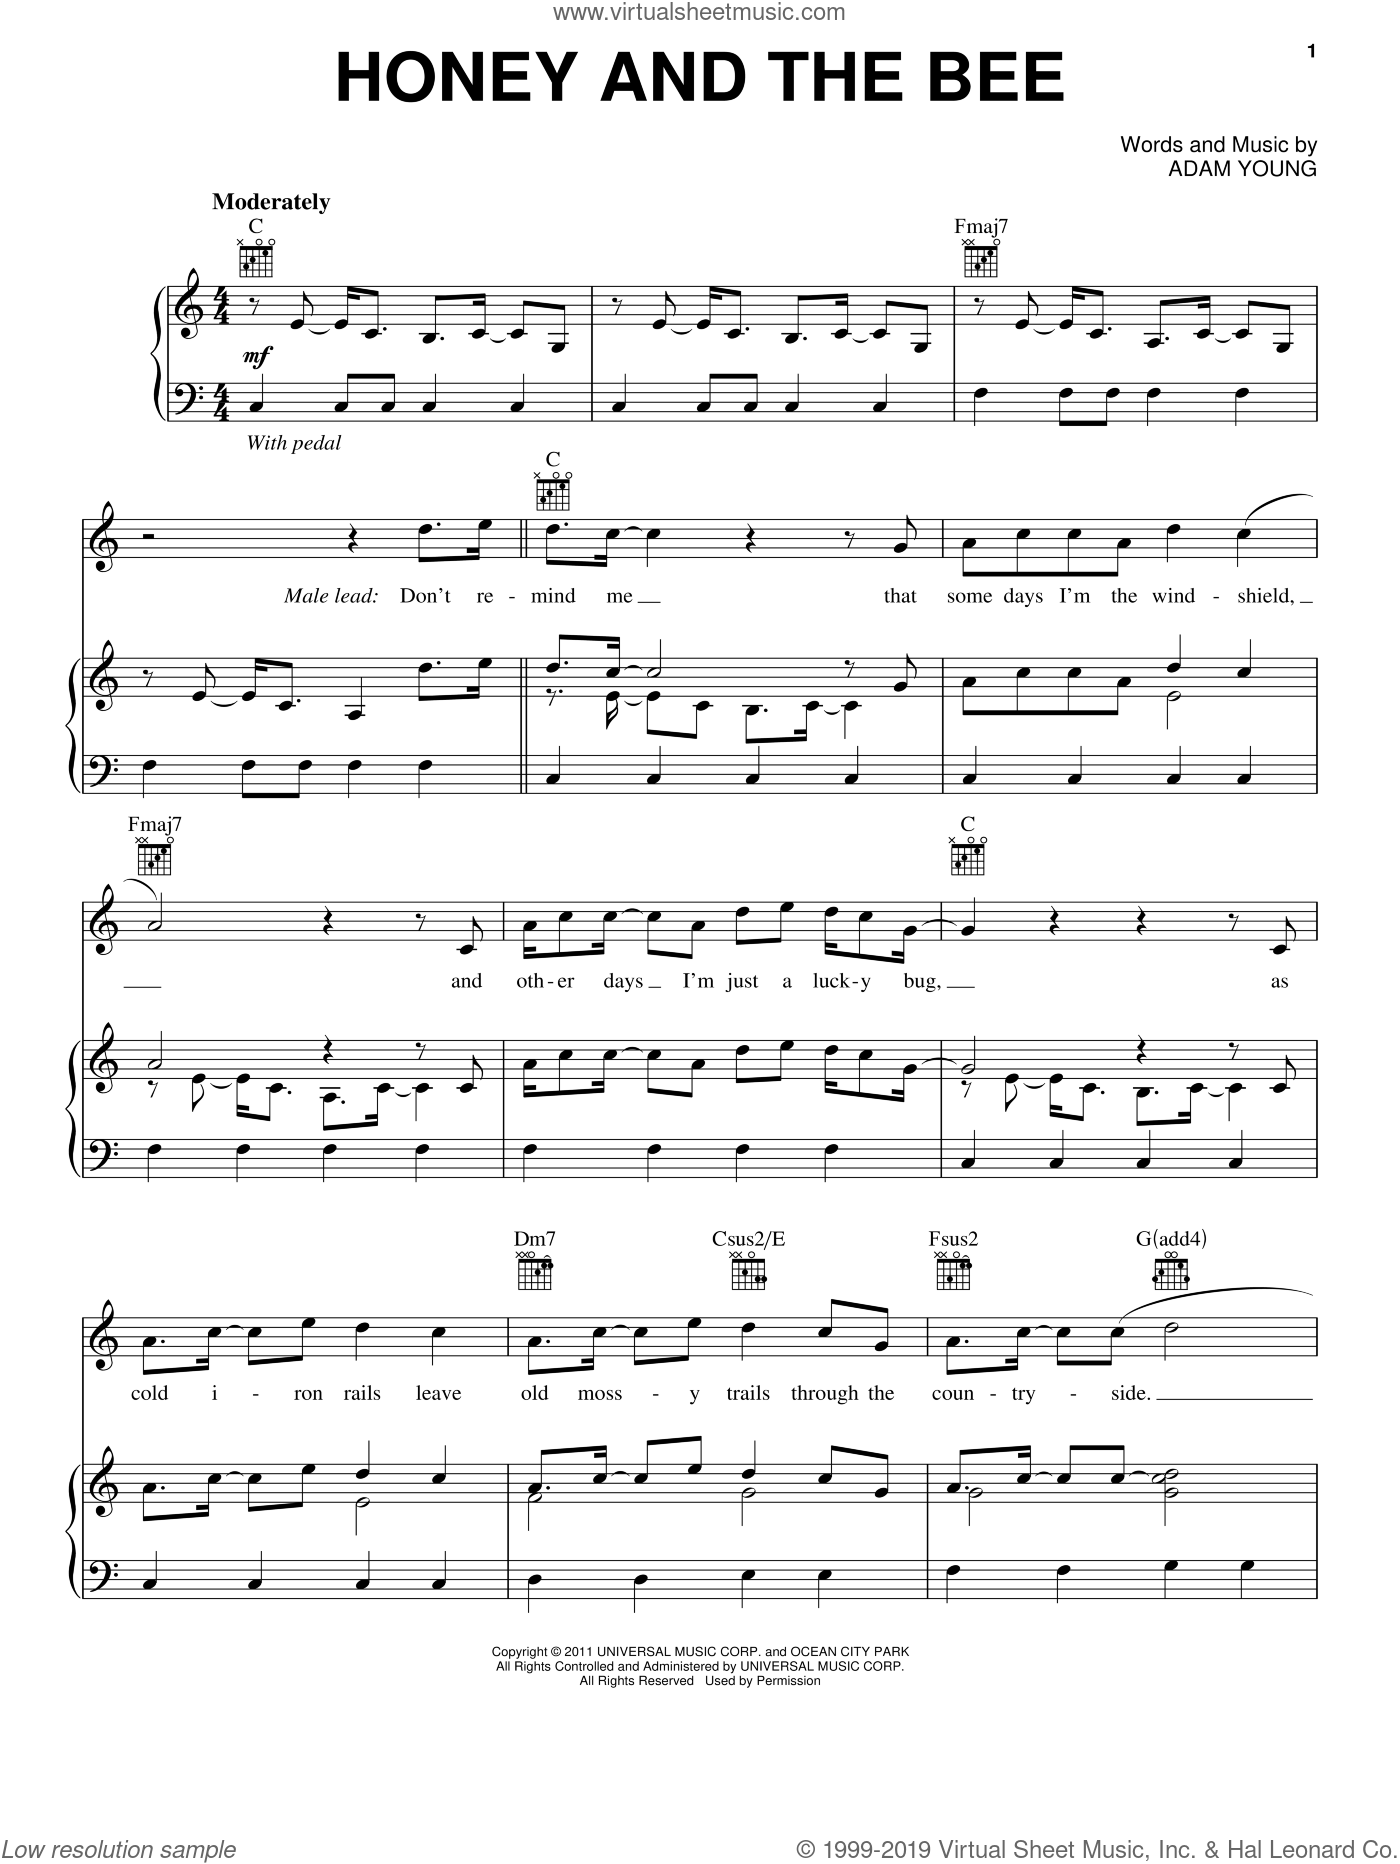 Honey And The Bee sheet music for voice, piano or guitar by Adam Young